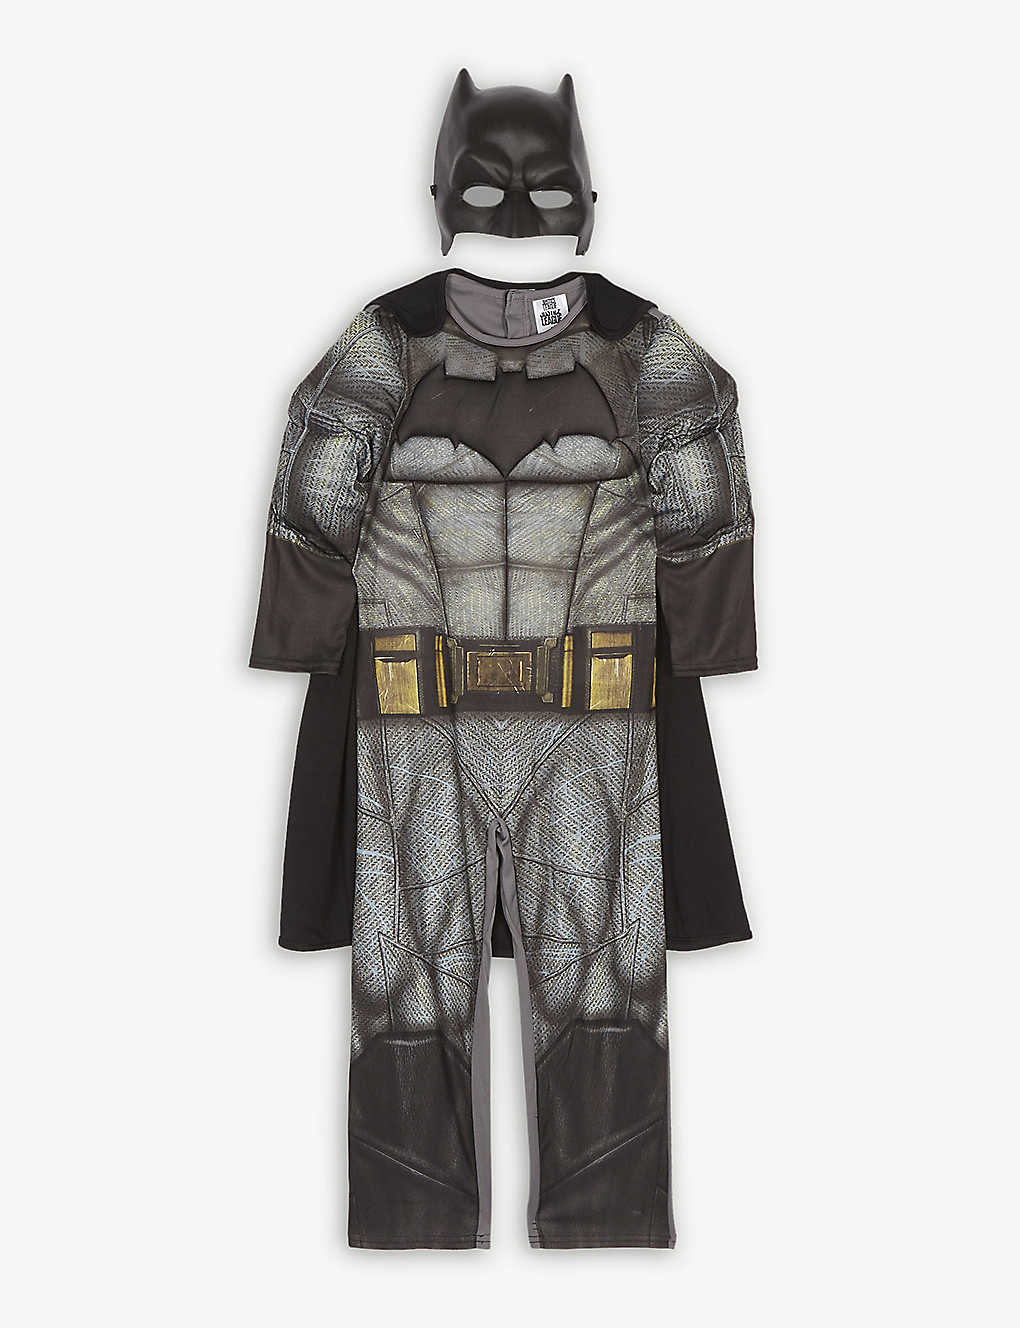 DRESS UP: Batman fancy dress costume 5-6 years